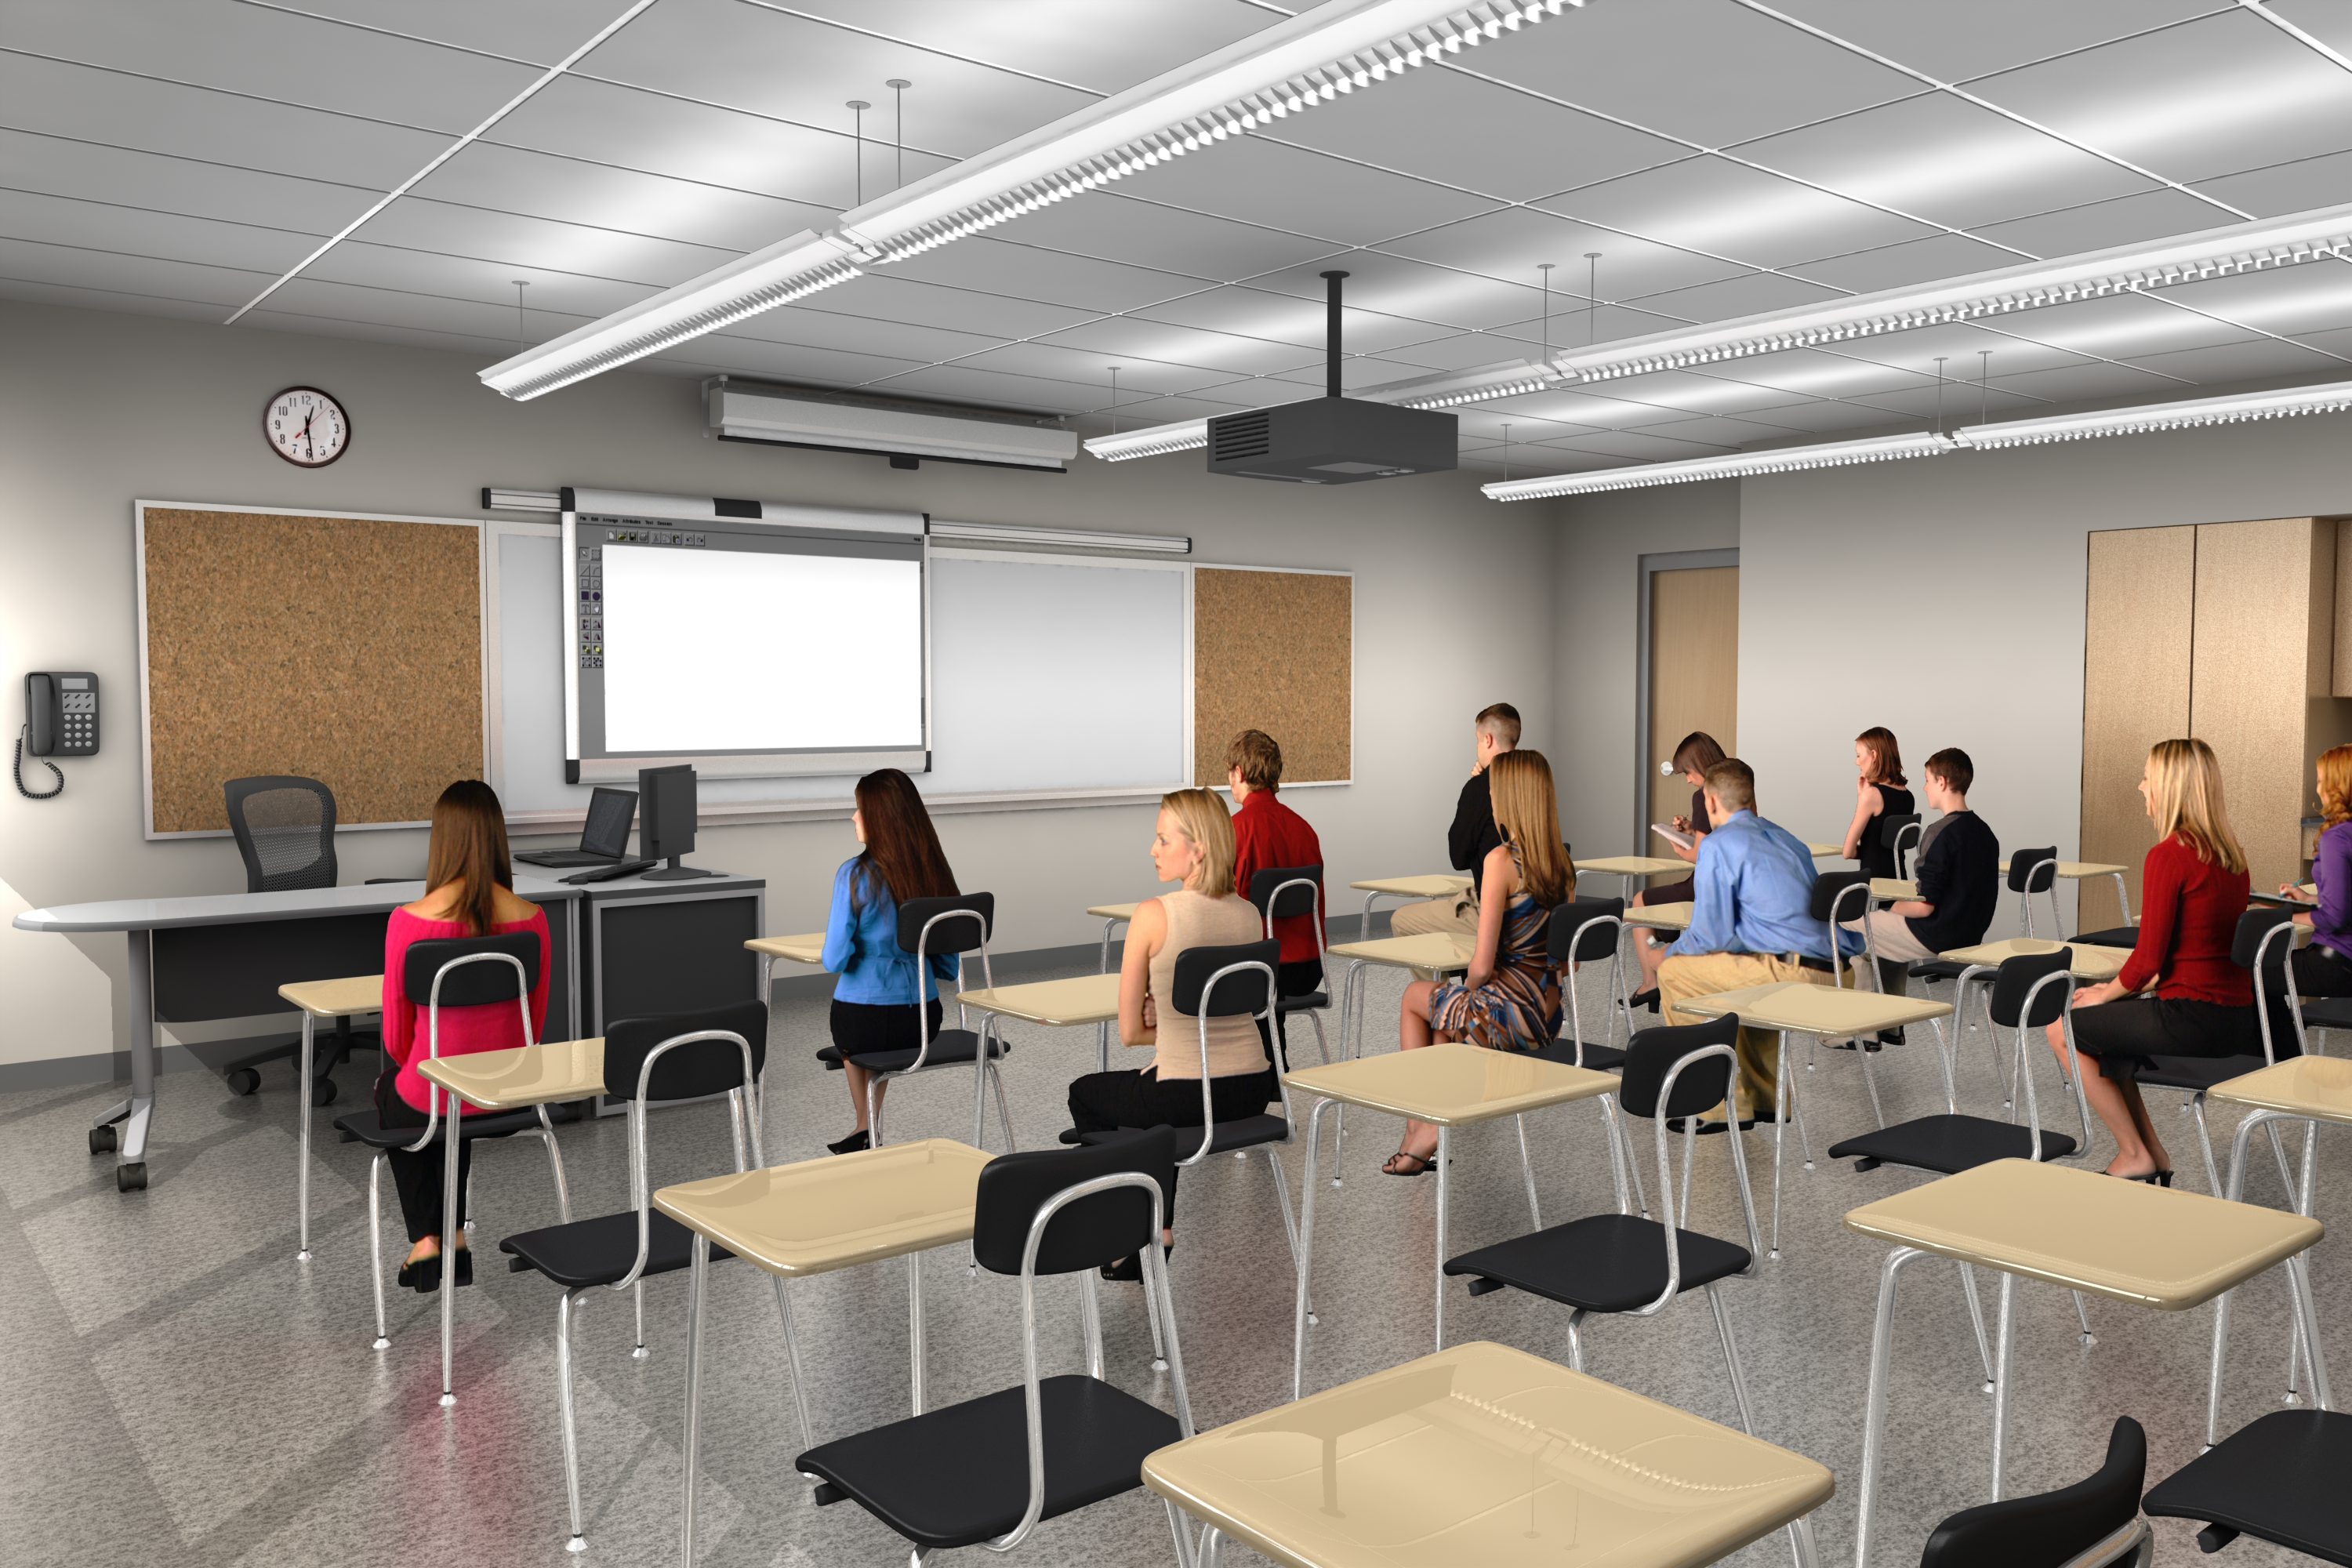 Modern N School Classroom ~ Nhs renovation project to overhaul education too citizen